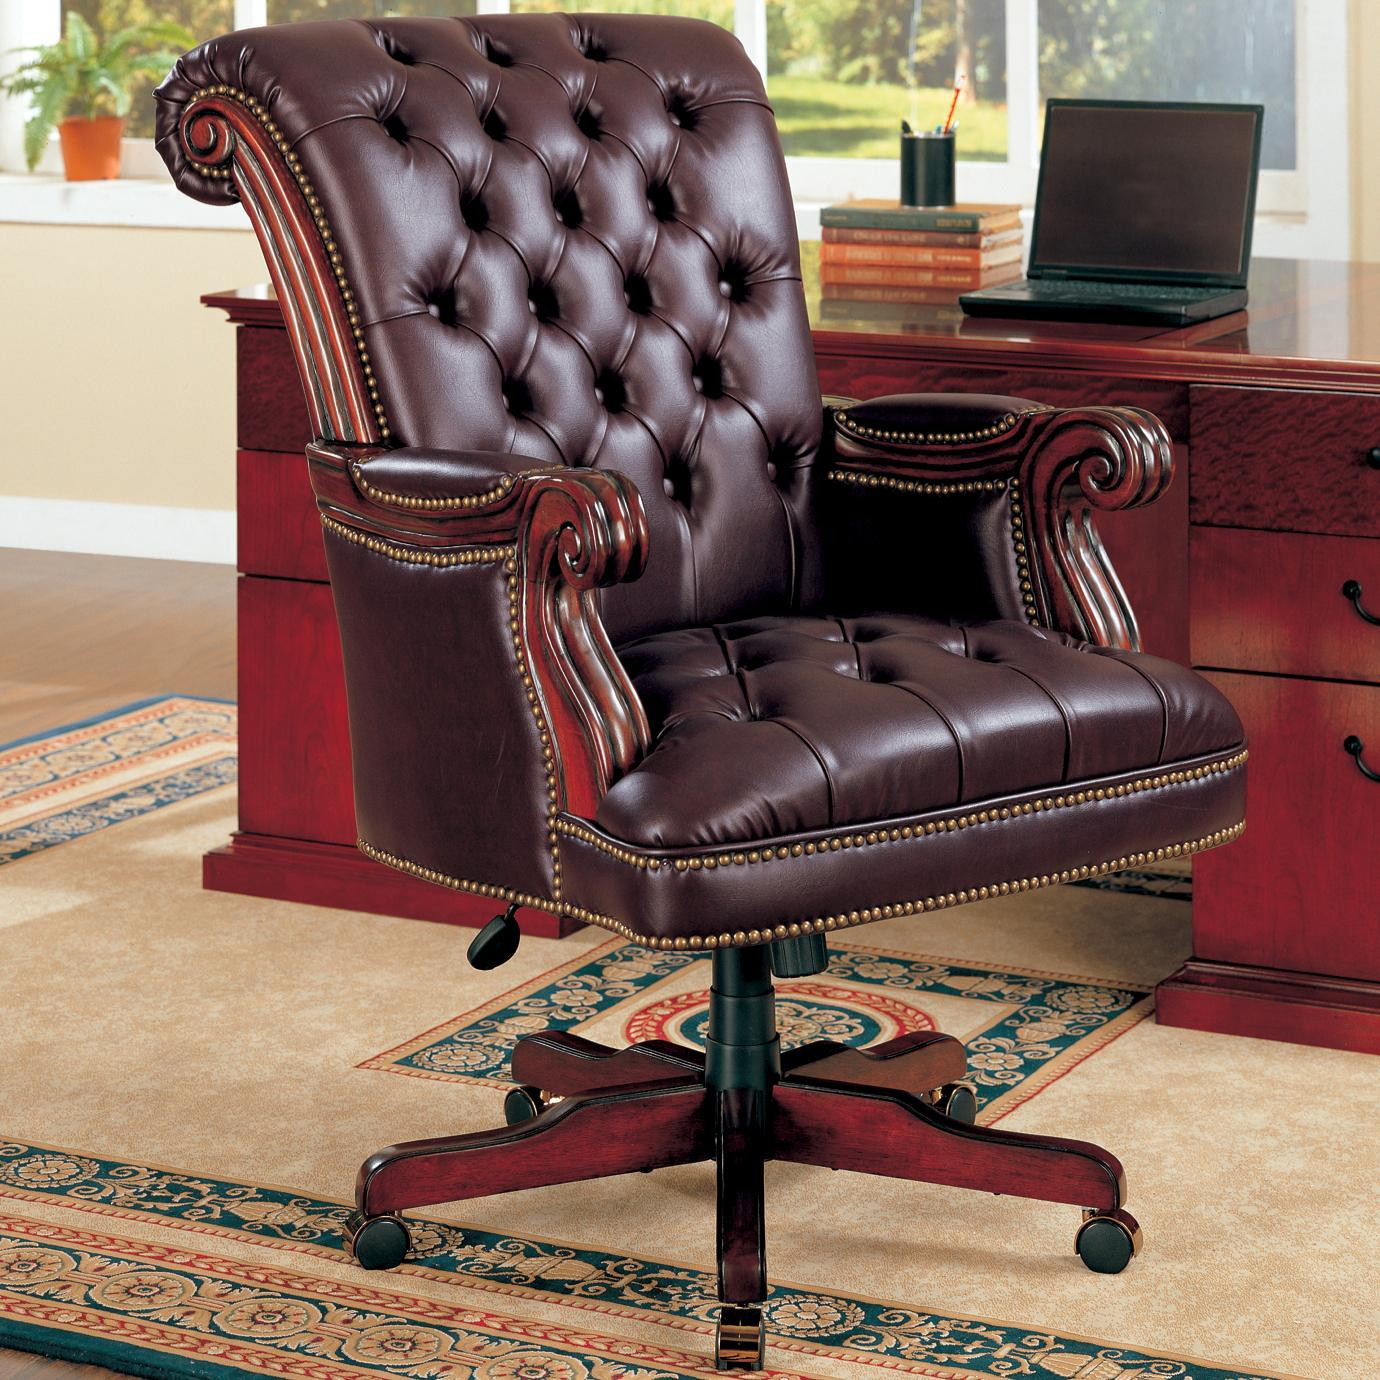 Best ideas about Leather Office Chair . Save or Pin Coaster fice Chairs Traditional Leather Executive Now.